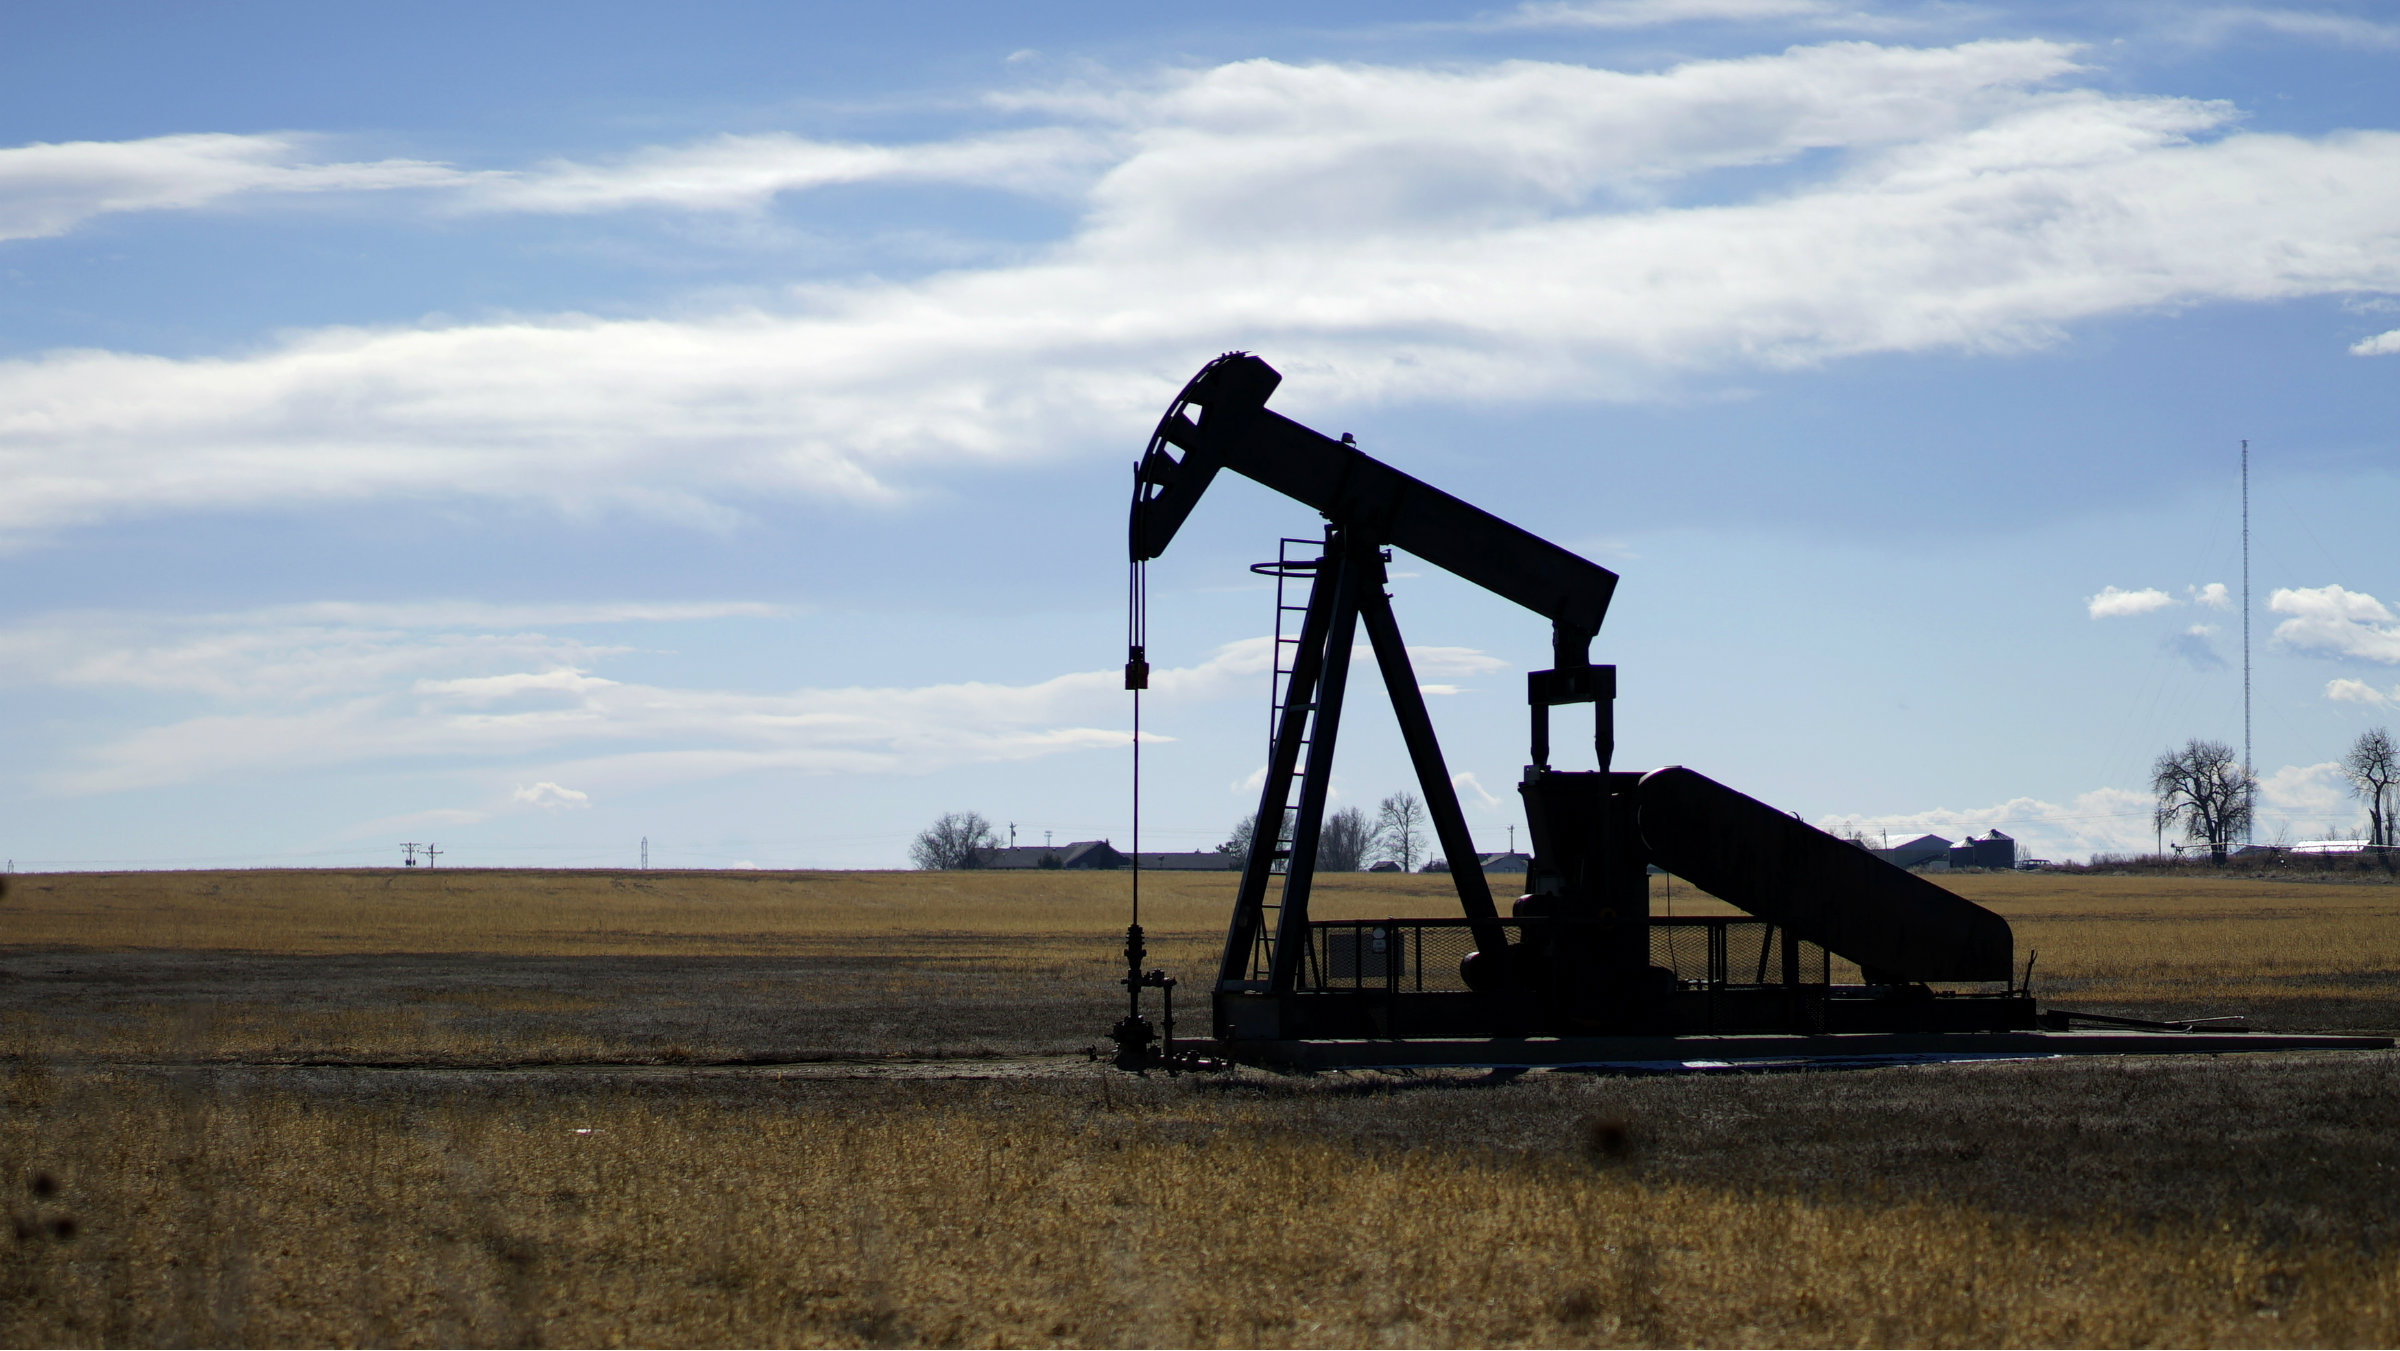 An oil well is seen near Denver, Colorado February 2, 2015. Oil prices may stay depressed until summer due to weak seasonal demand even as Saudi Arabia's strategy of curbing the output growth of rival producers might have started achieving tangible results, OPEC delegates told Reuters. REUTERS/Rick Wilking (UNITED STATES - Tags: BUSINESS ENERGY COMMODITIES)